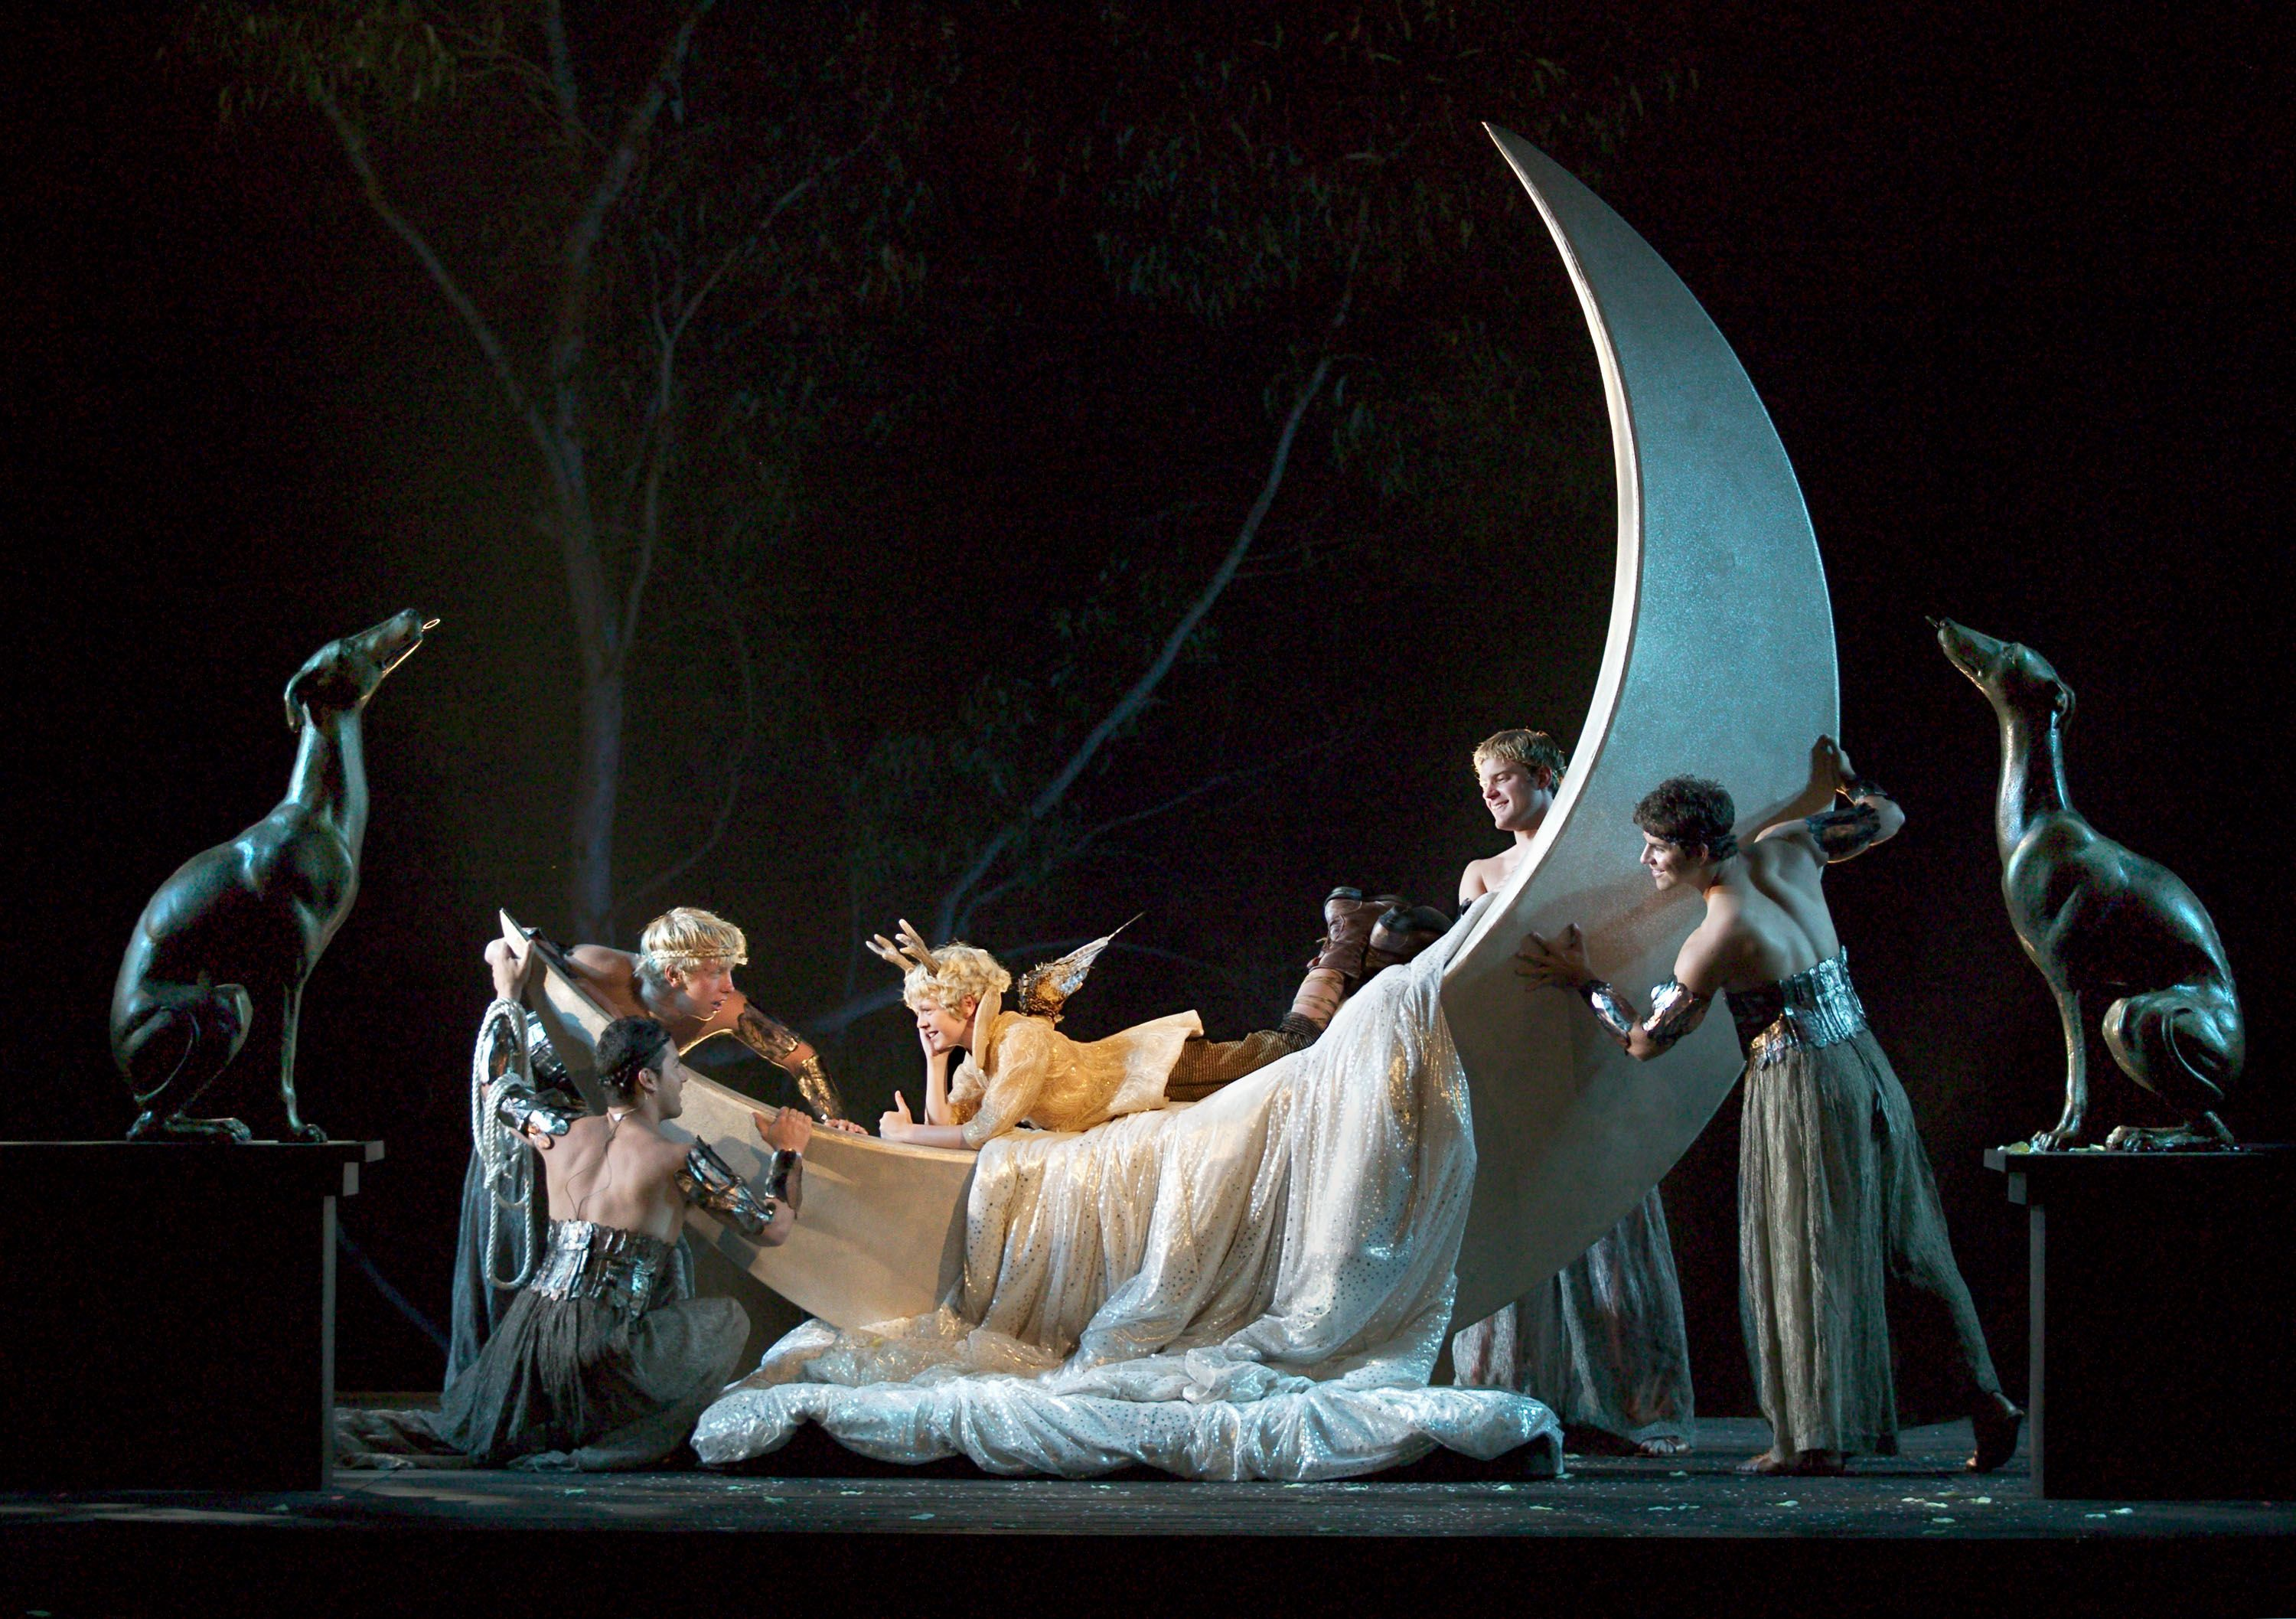 A Midsummer Night's Dream: Contrast in Human Mentality